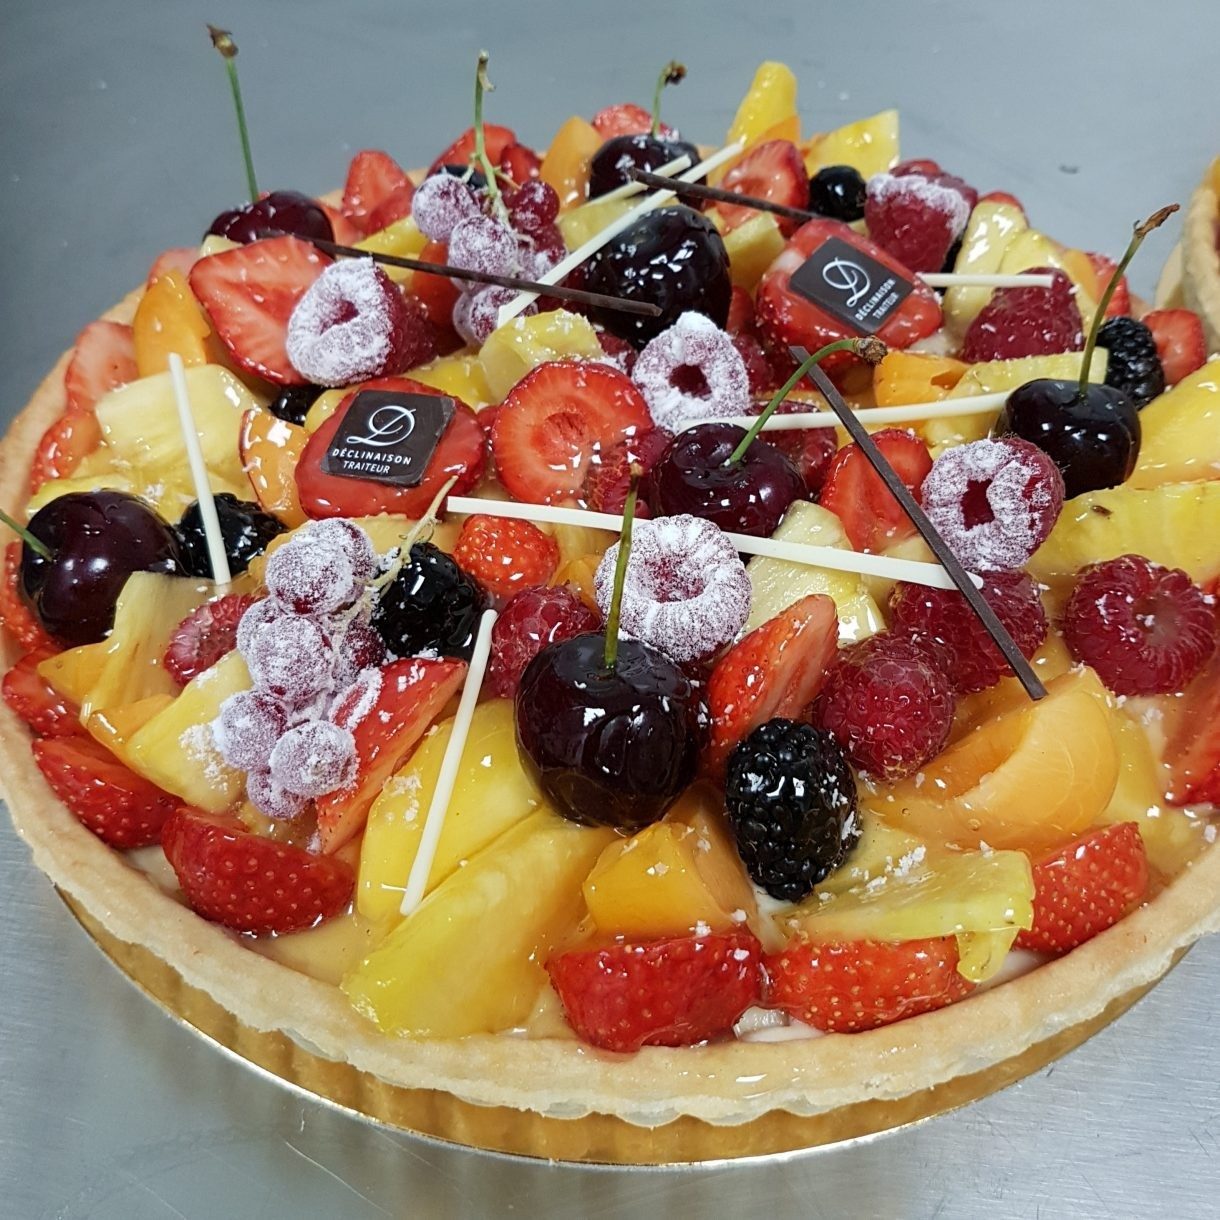 Variation Caterer - Obstkuchen